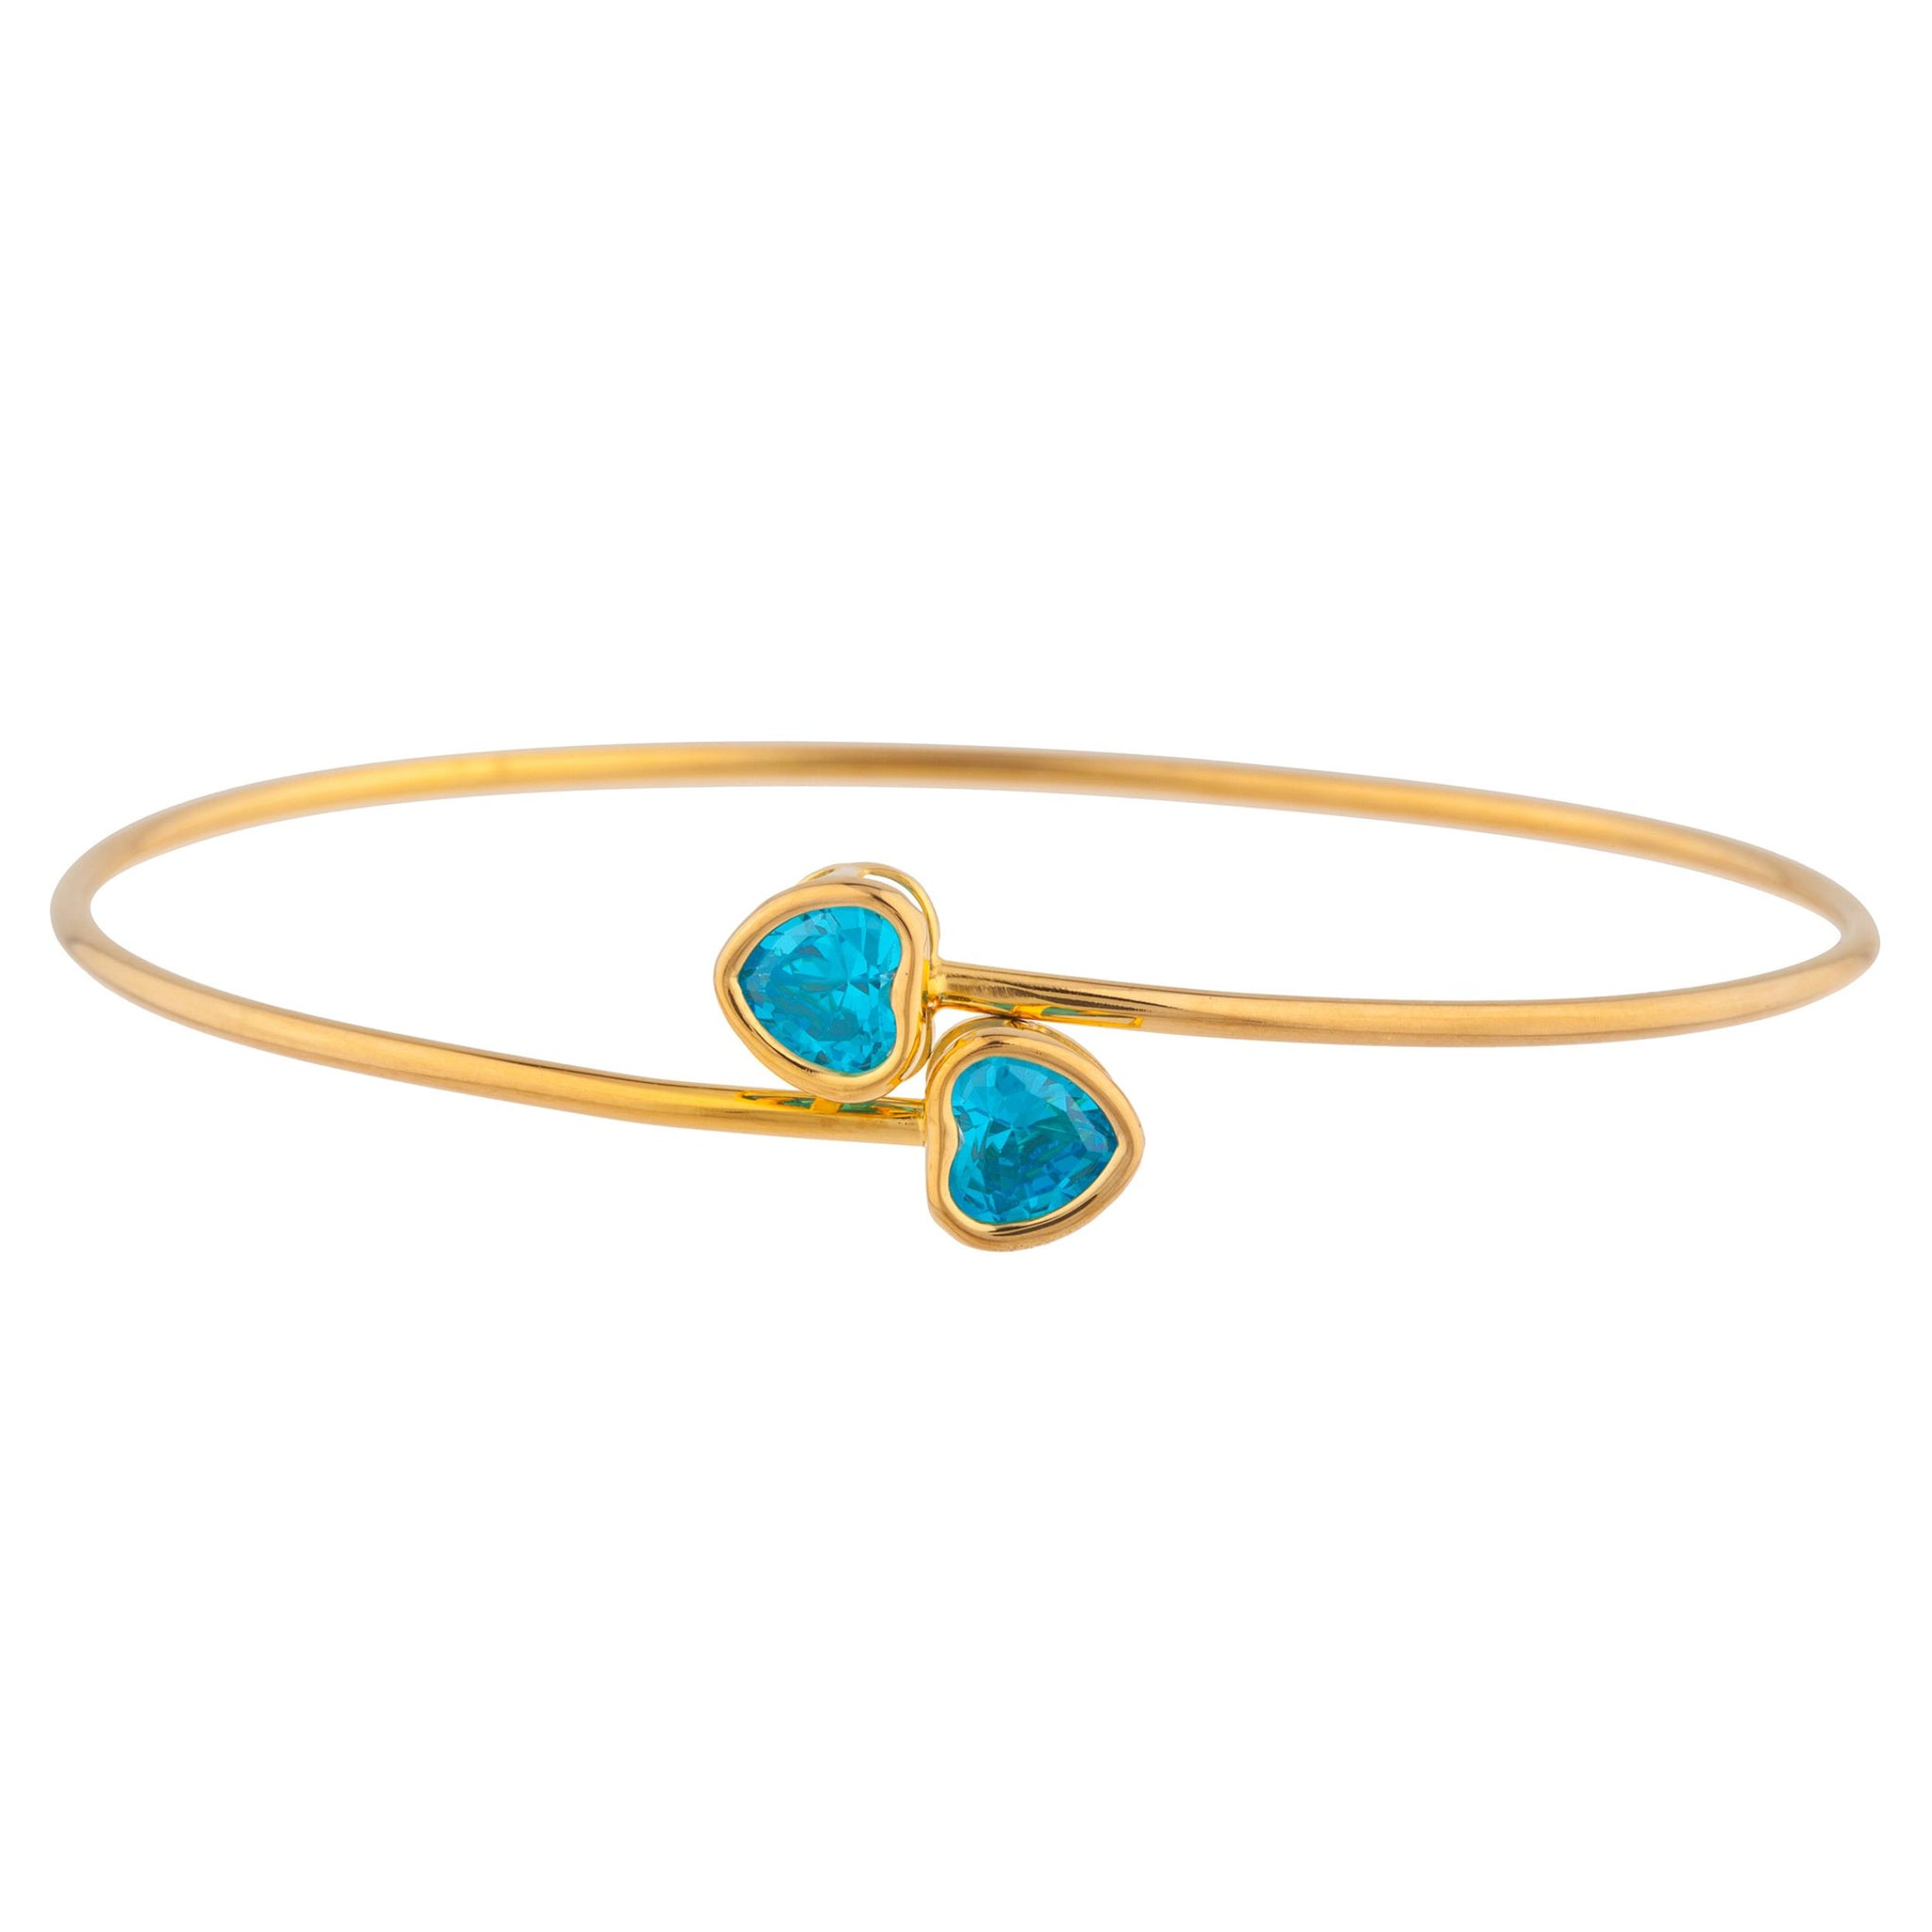 14Kt Yellow Gold Plated Swiss Blue Topaz Heart Bezel Bangle Bracelet